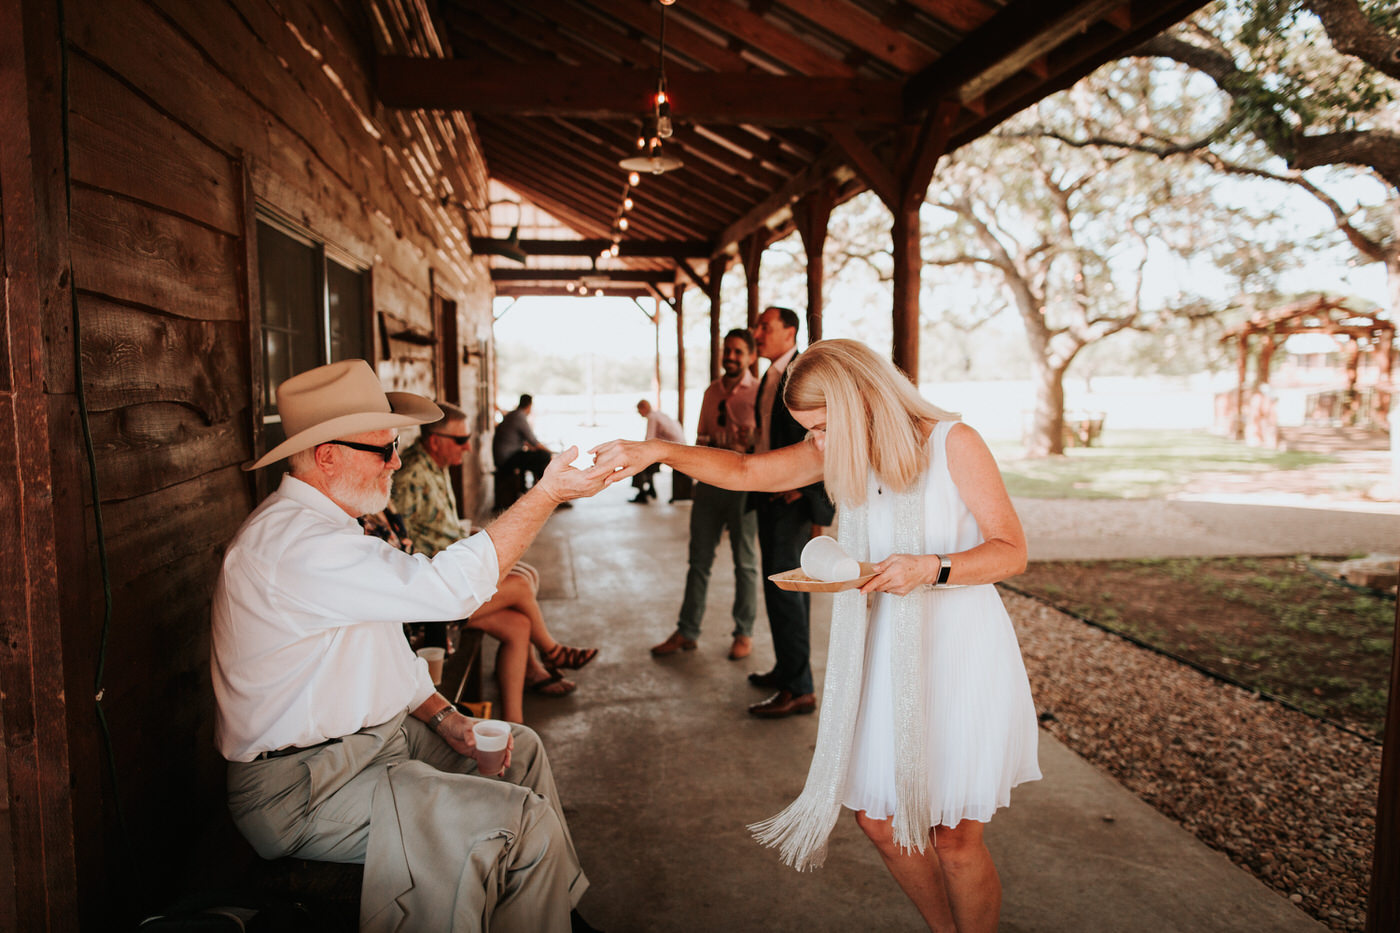 Wedding guests at Texas hill country wedding